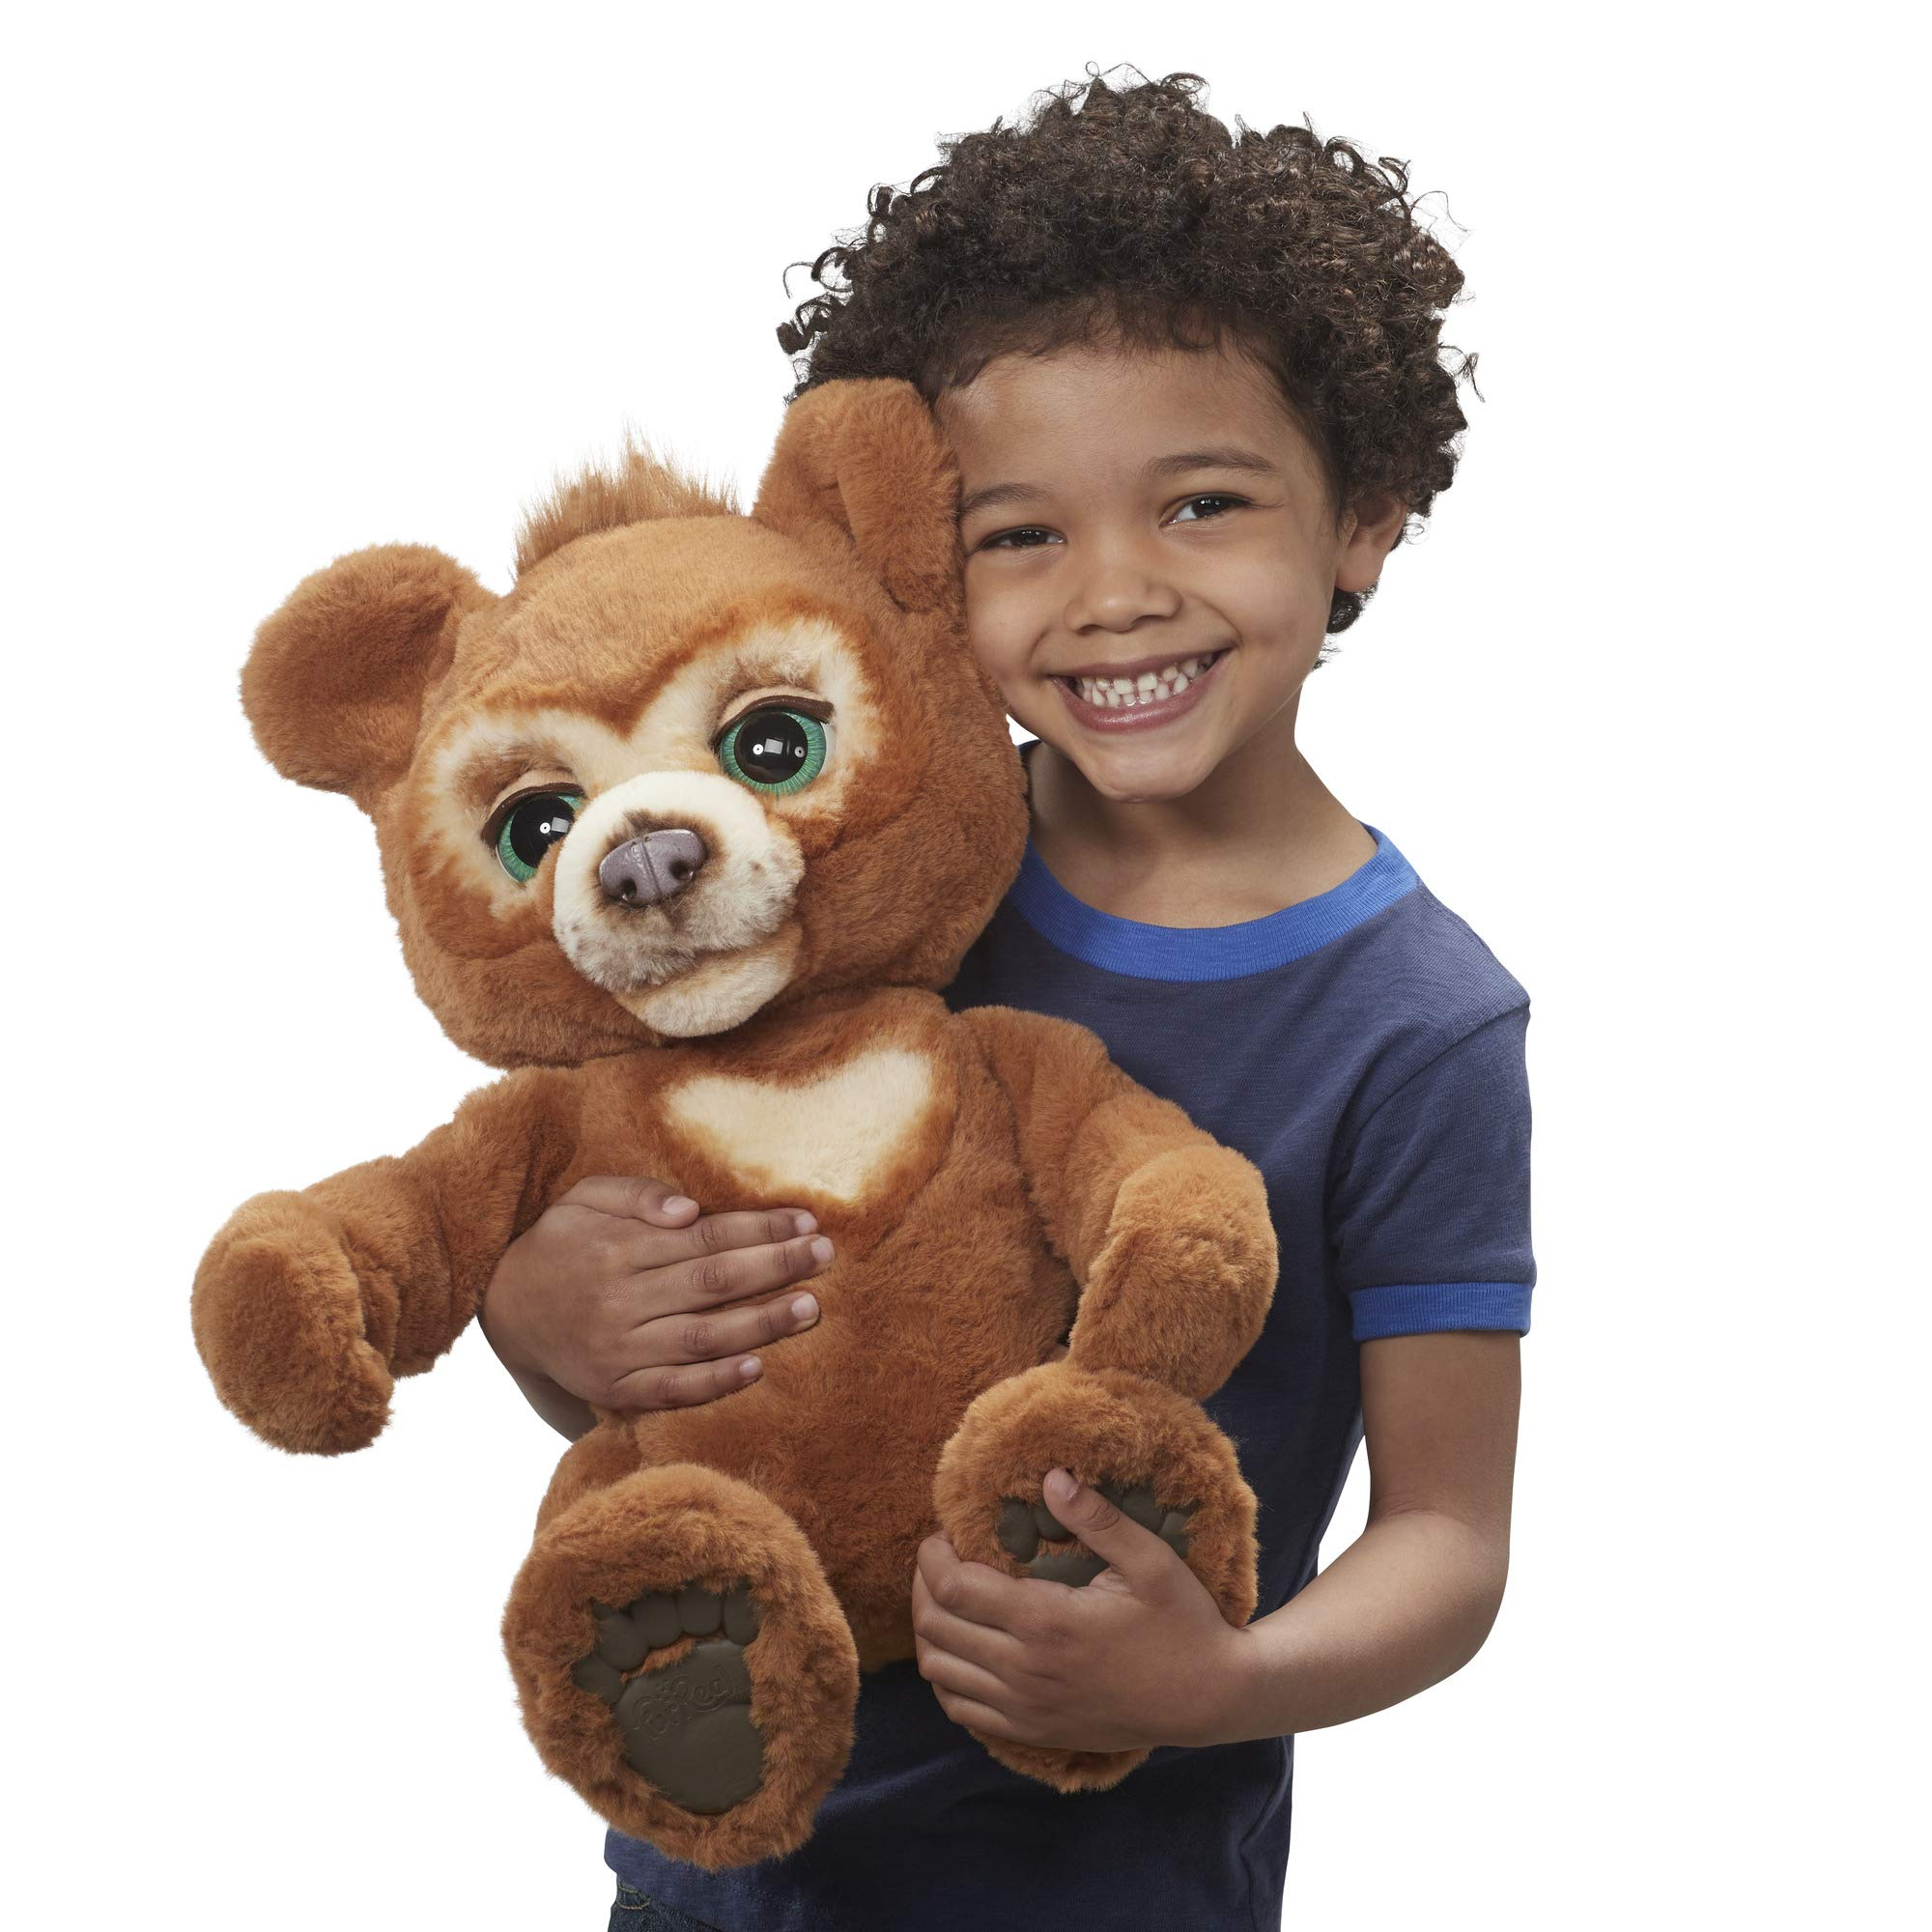 FurReal Cubby, The Curious Bear Interactive Plush Toy, Ages 4 and Up by FurReal (Image #11)